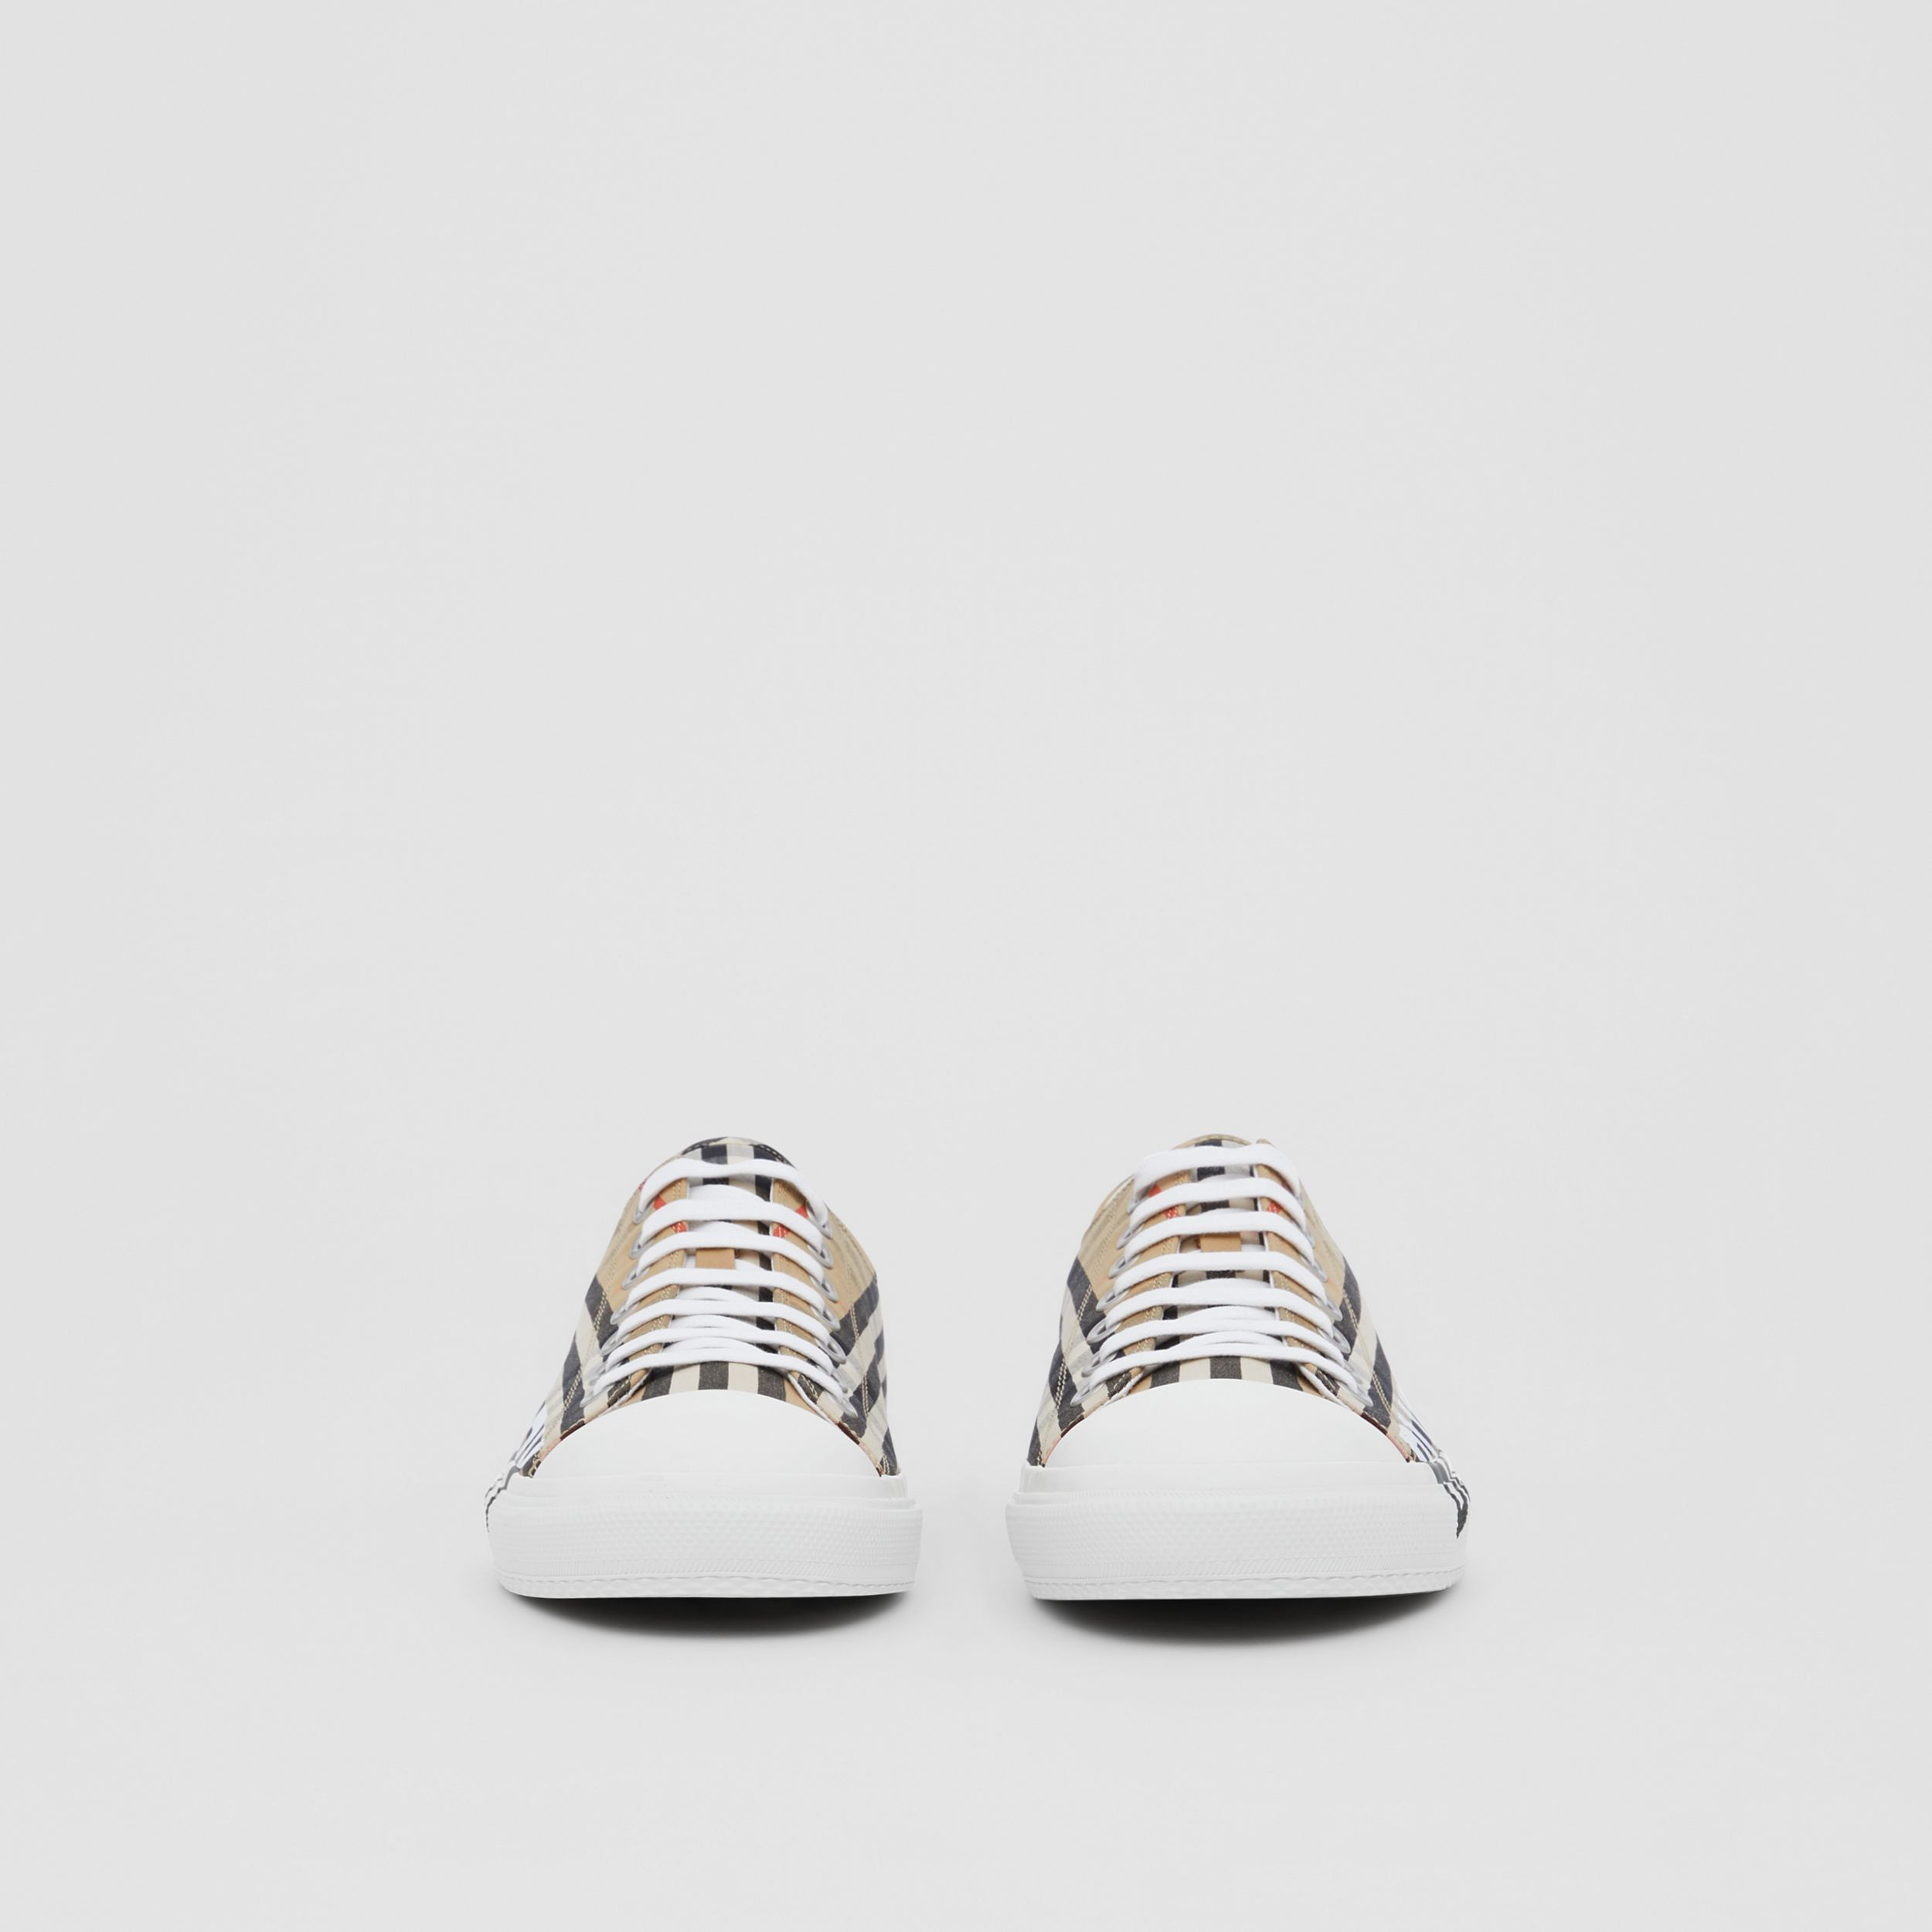 Logo Print Vintage Check Cotton Sneakers in Archive Beige - Men | Burberry United States - 3